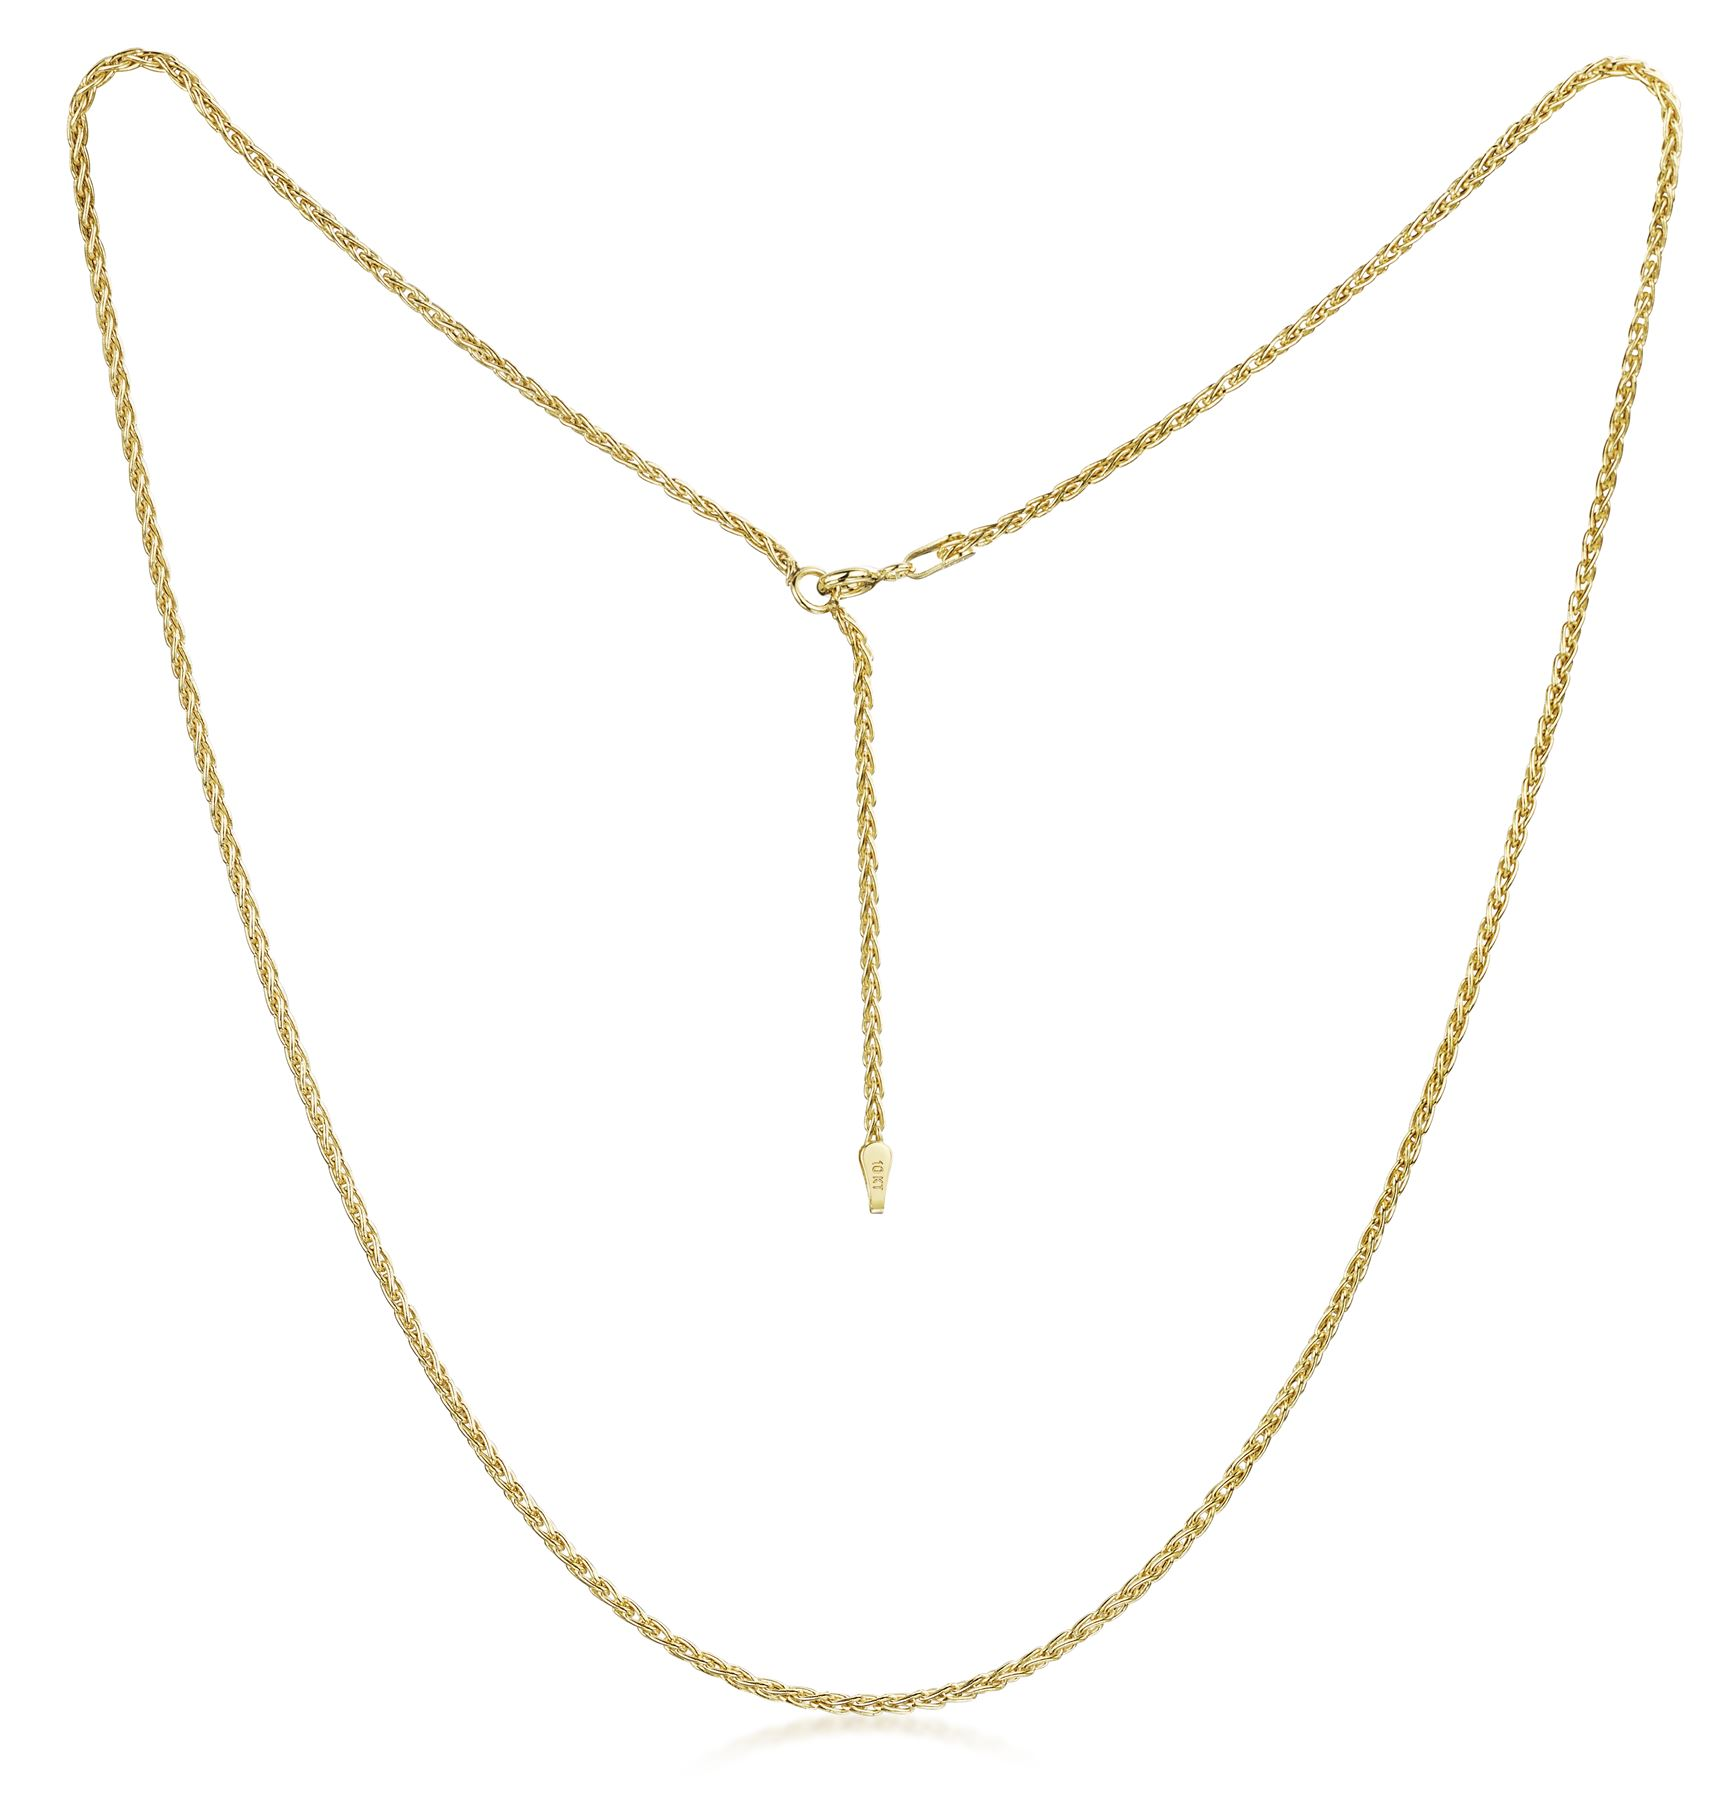 Amberta-Genuine-Solid-10k-Gold-Chain-Adjustable-Necklace-for-Women-and-Men thumbnail 16